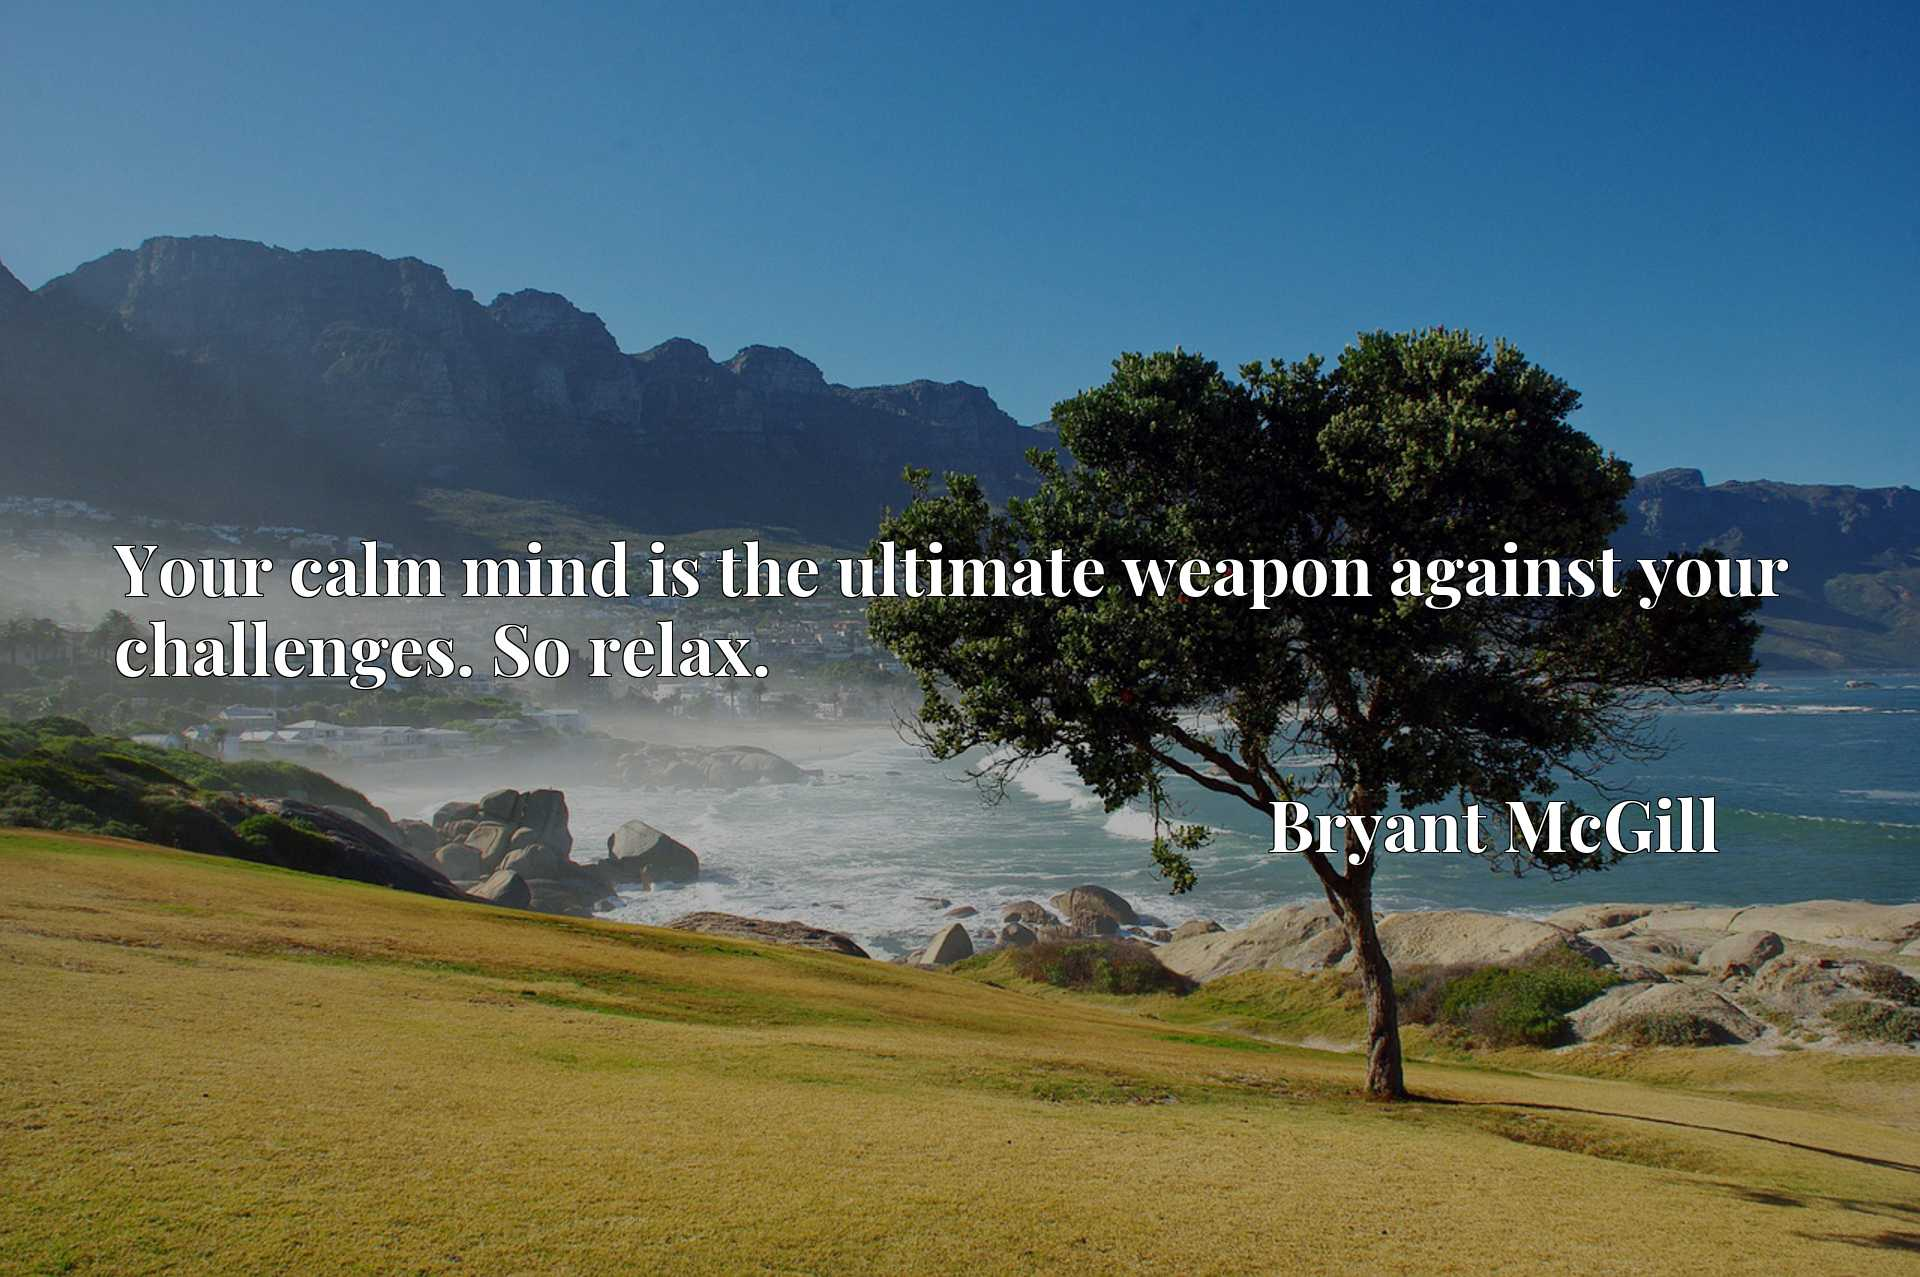 Your calm mind is the ultimate weapon against your challenges. So relax.